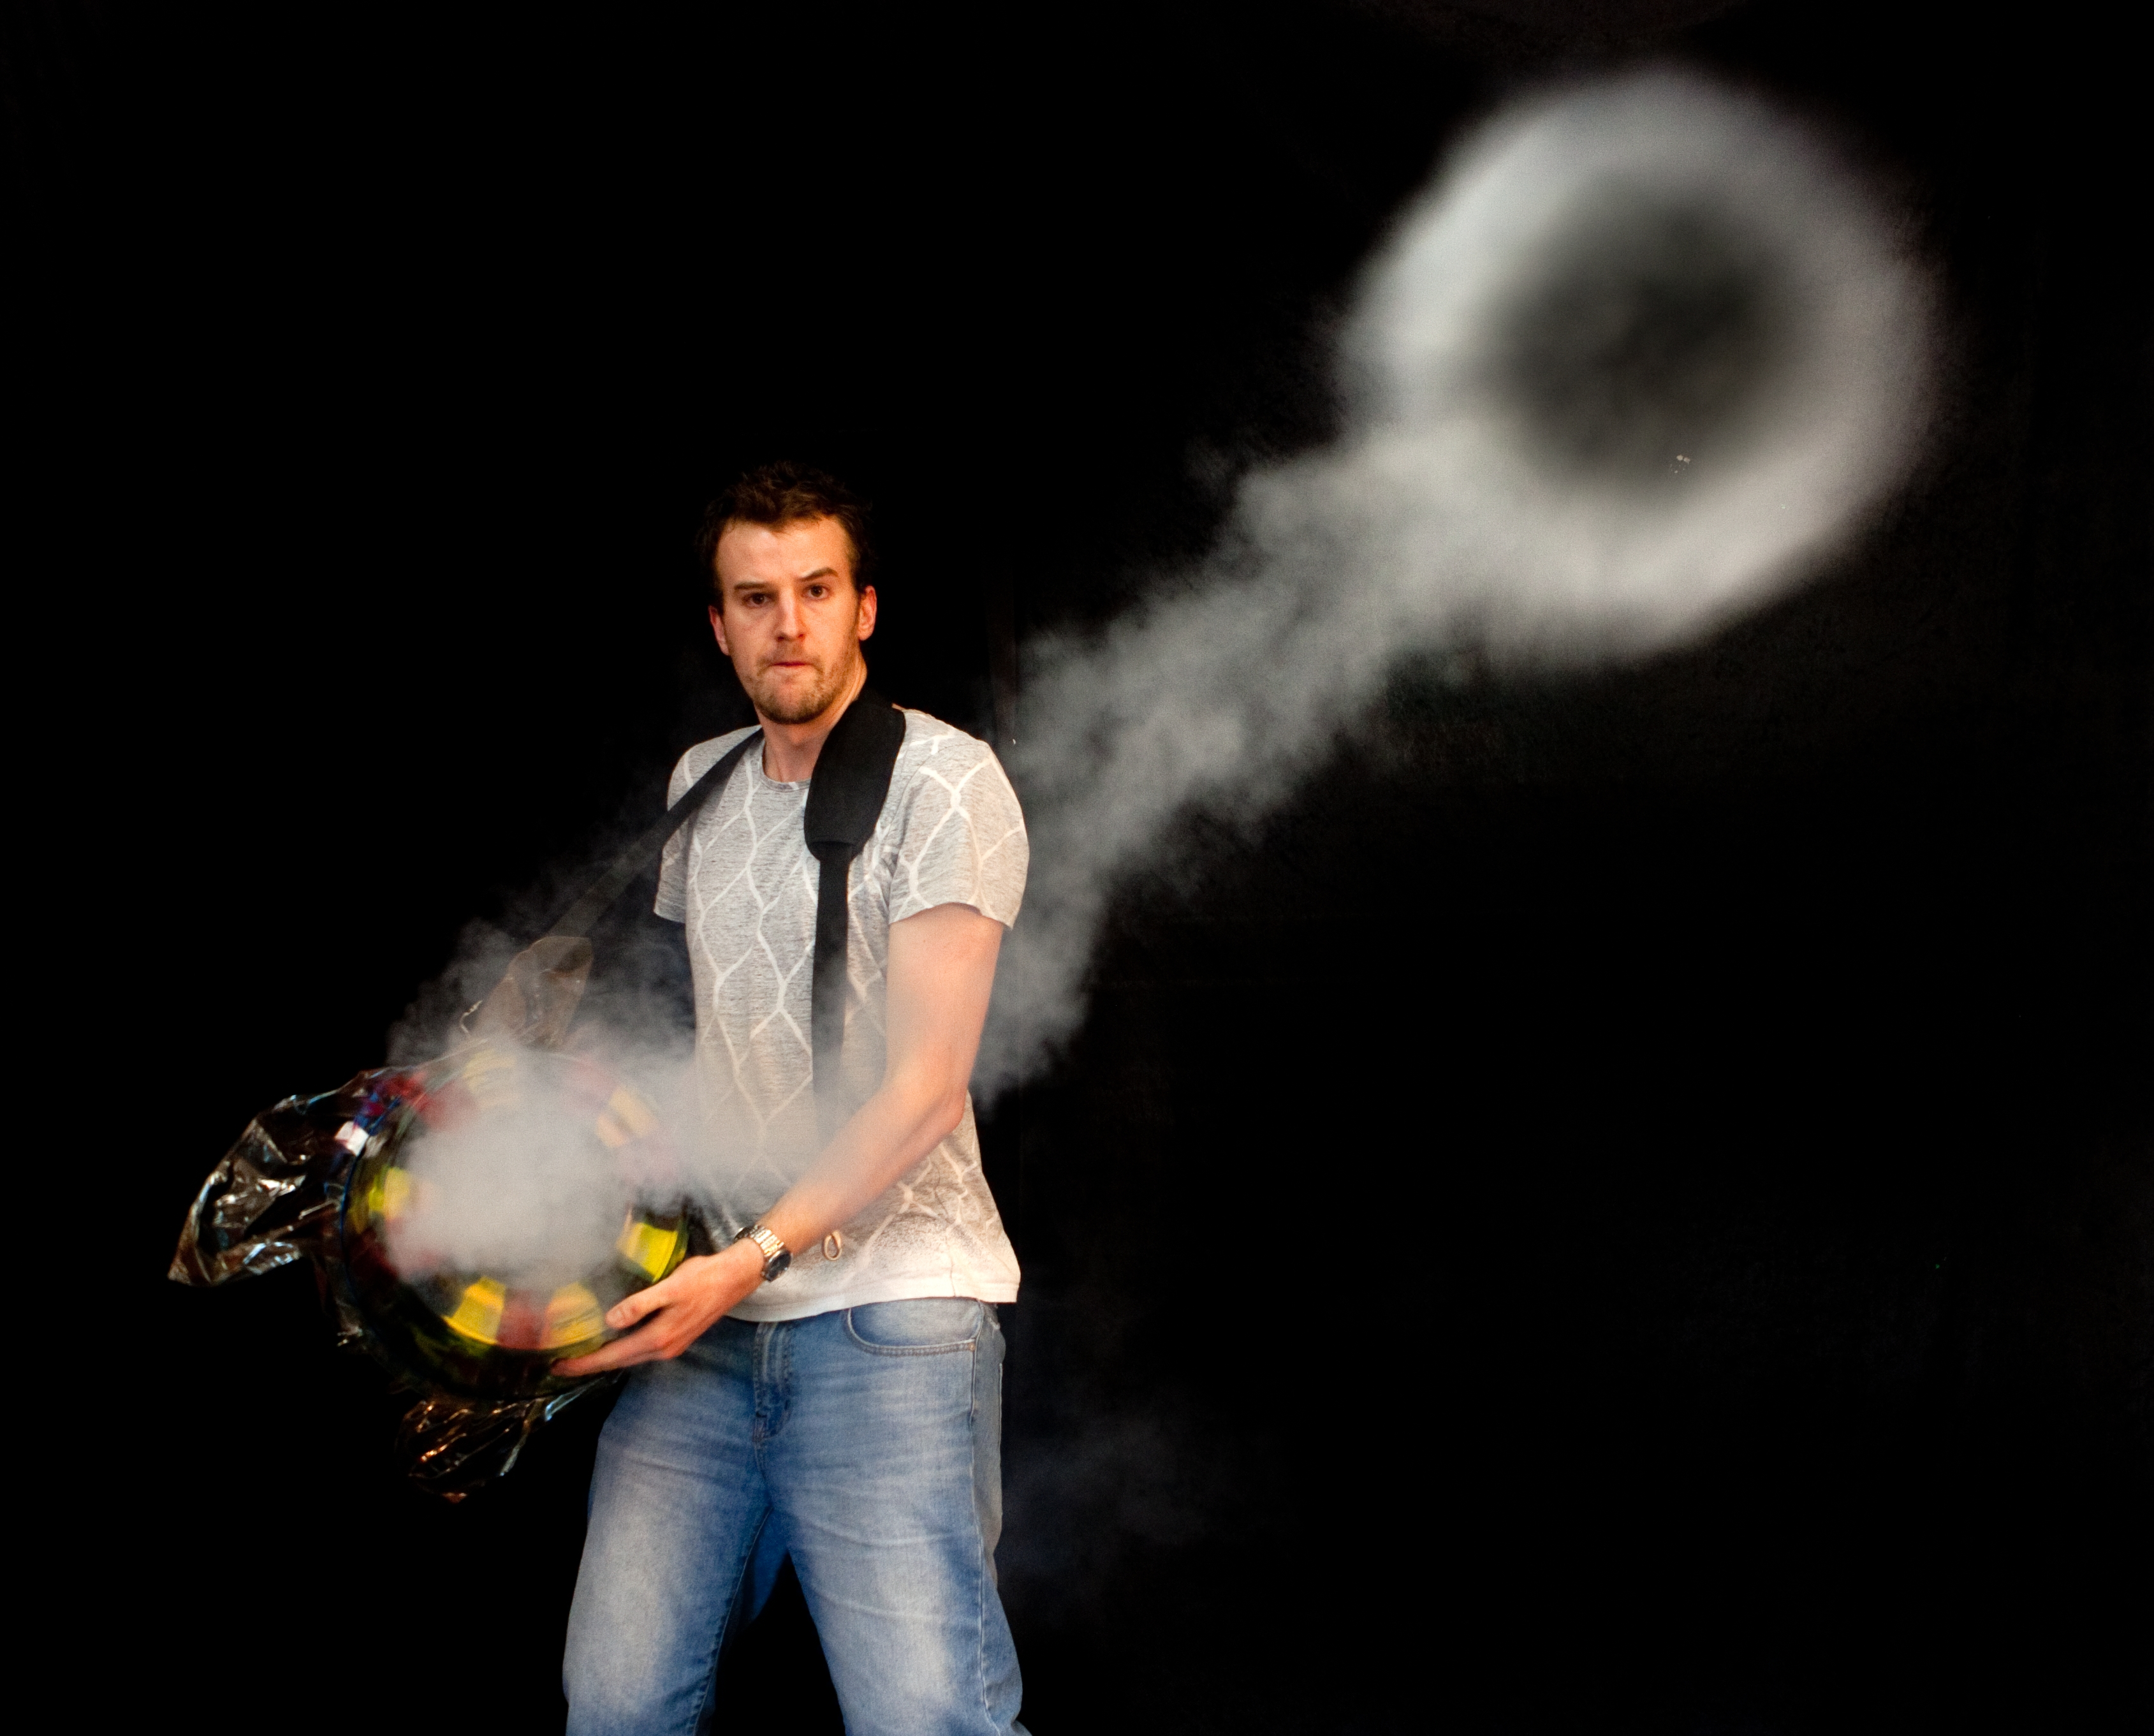 Smoke Ring Cannon Science Project